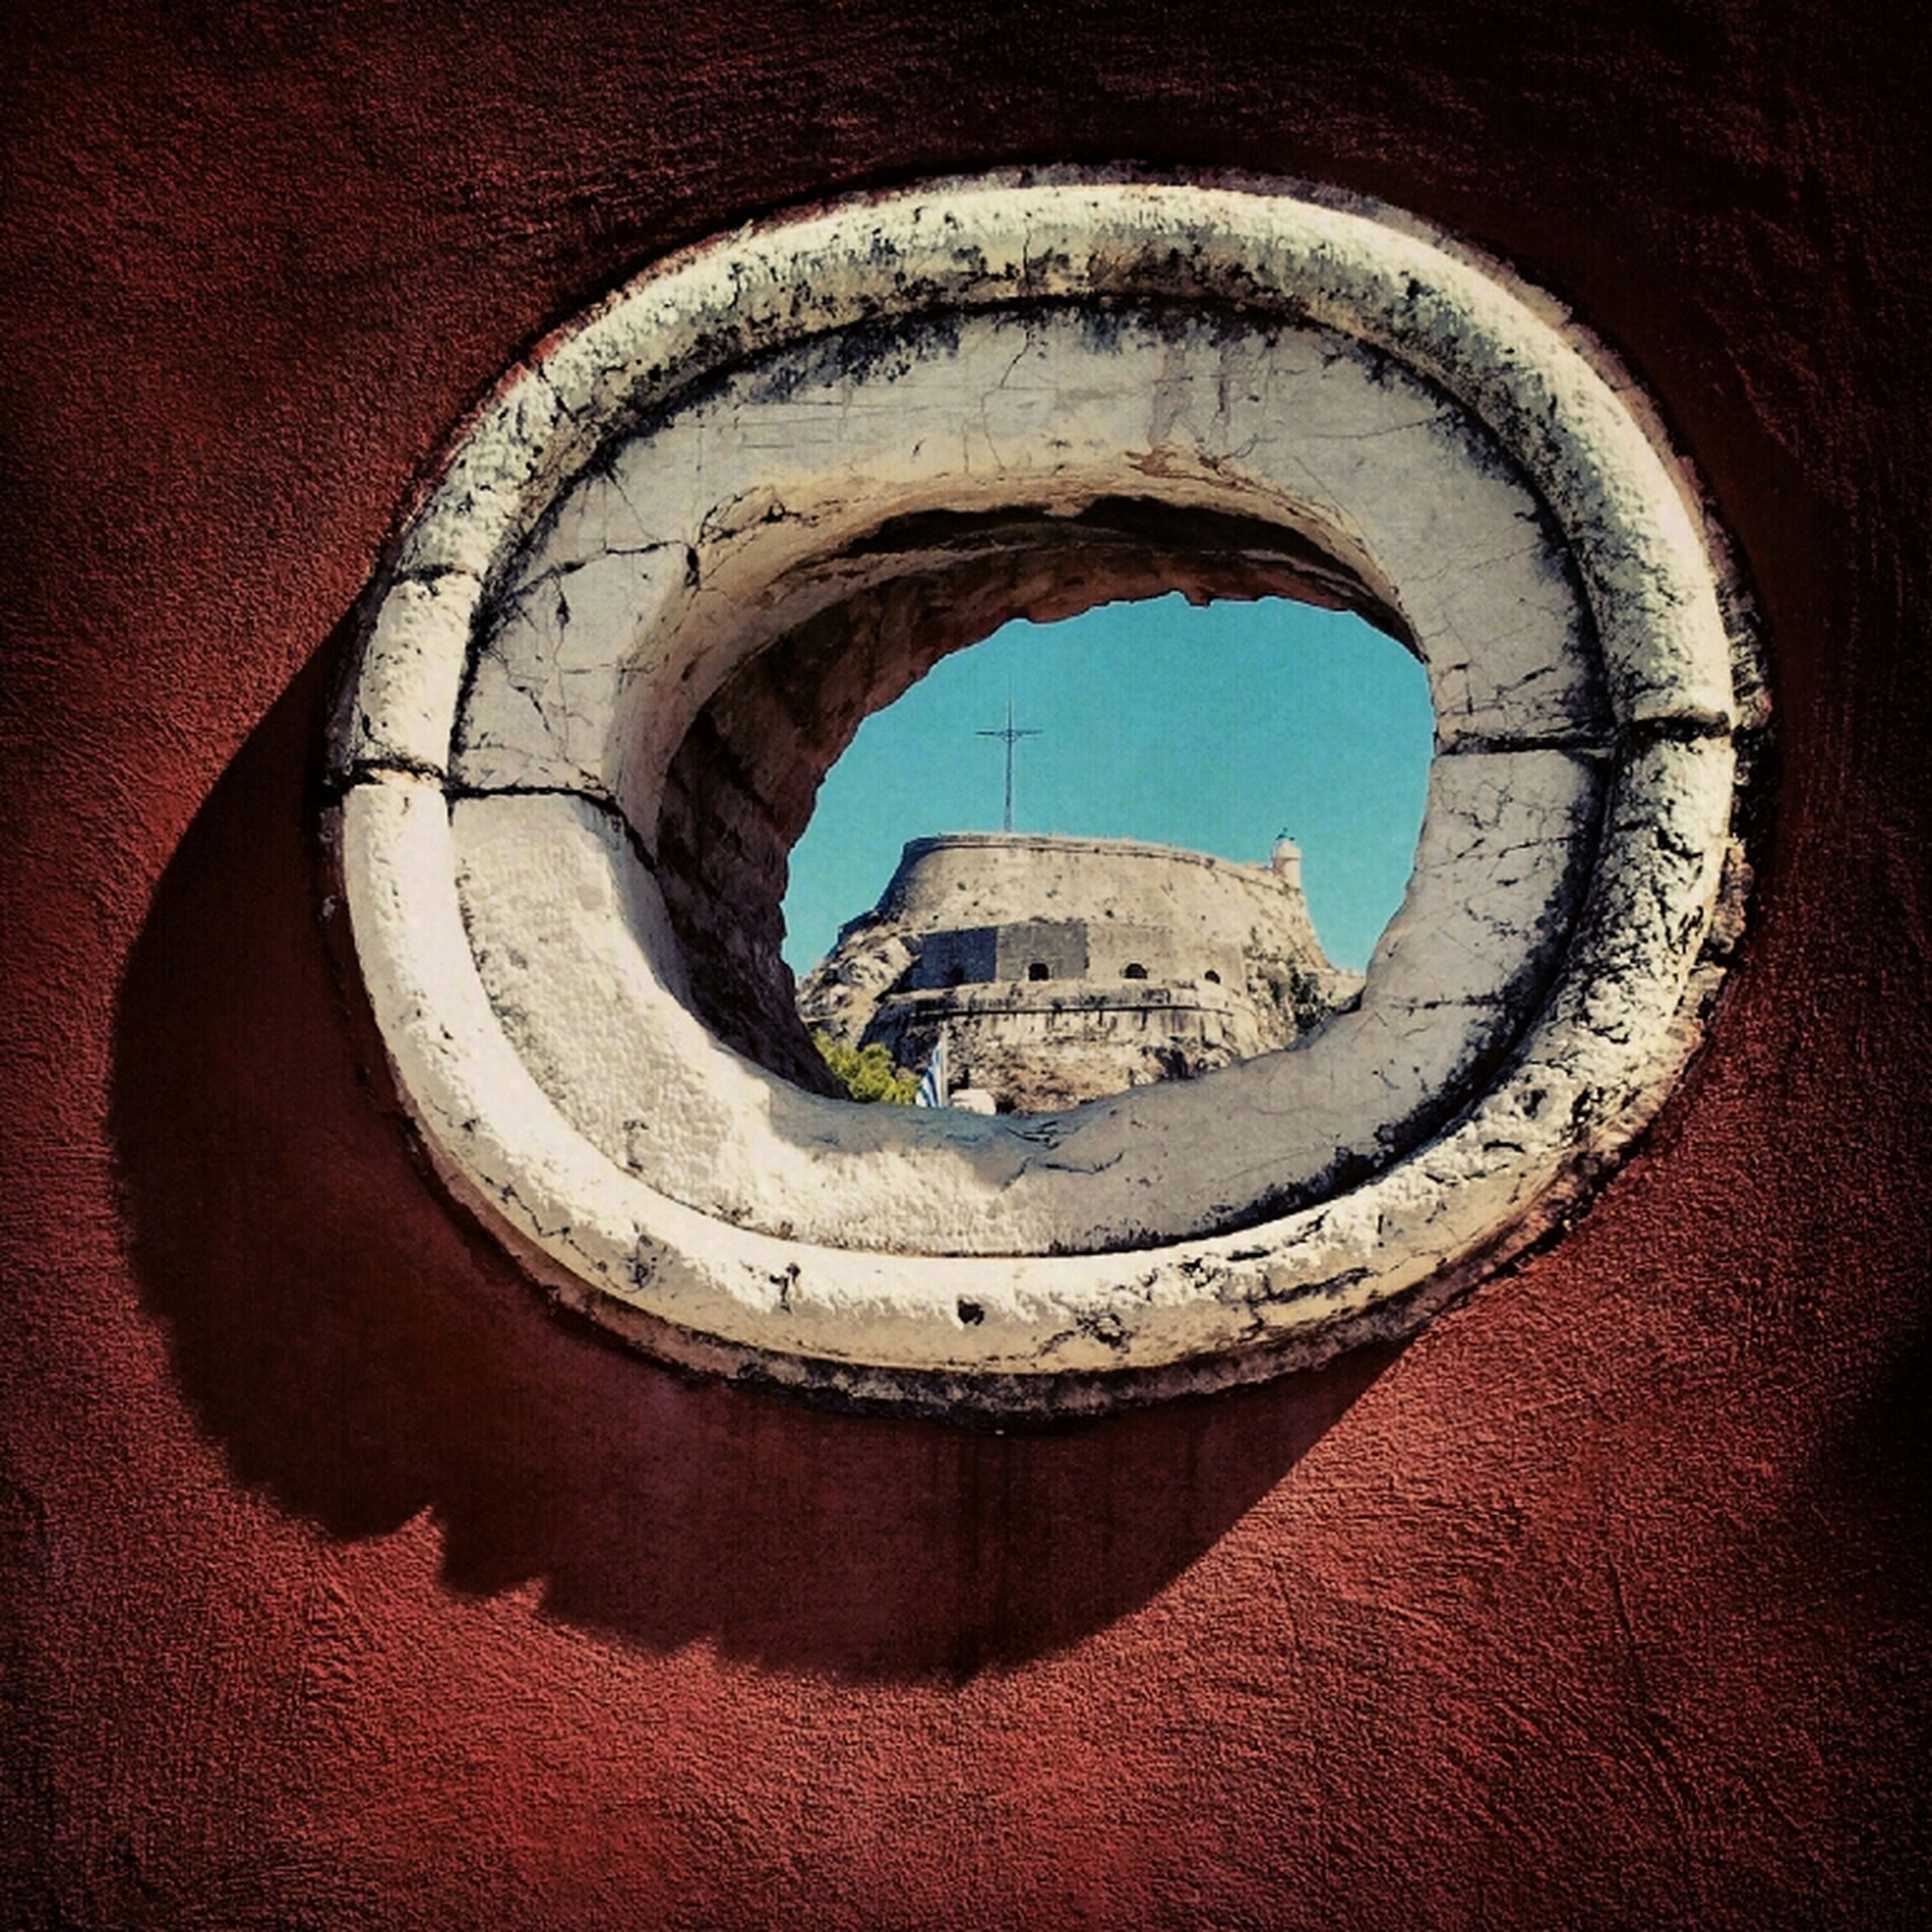 architecture, built structure, circle, building exterior, sky, geometric shape, arch, hole, no people, indoors, close-up, day, window, old, low angle view, blue, weathered, building, wall - building feature